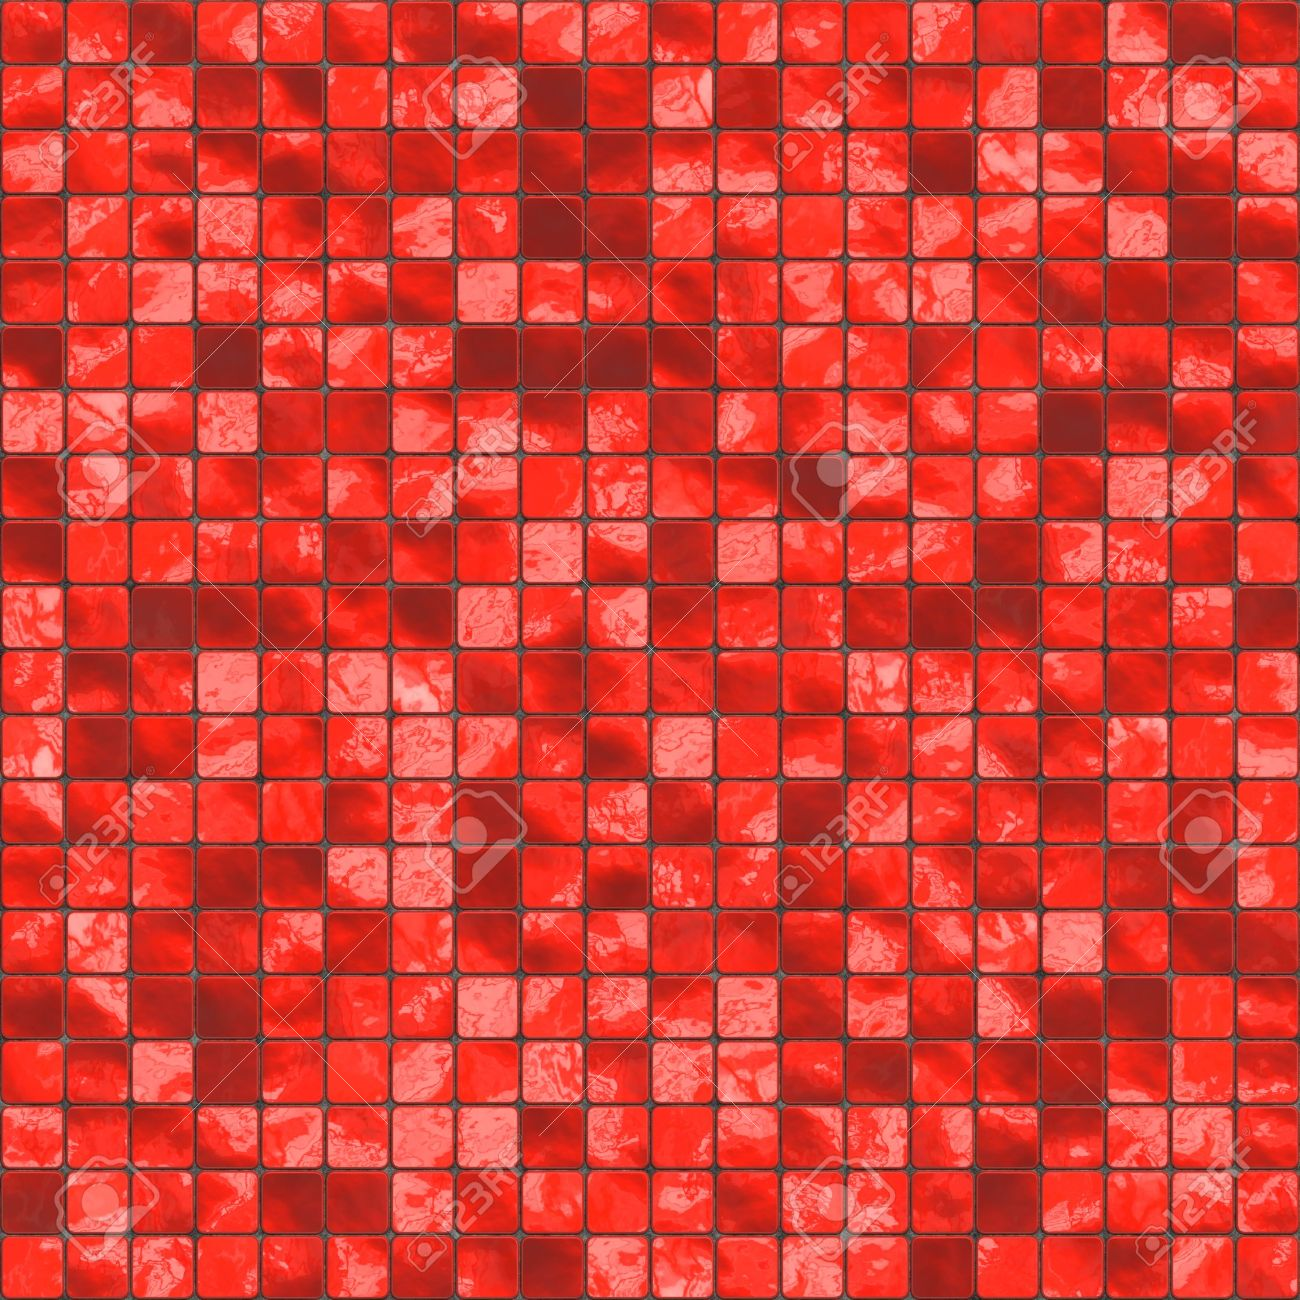 Red ceramic tiles will tile seamless as a pattern stock photo red ceramic tiles will tile seamless as a pattern stock photo 3905378 dailygadgetfo Choice Image